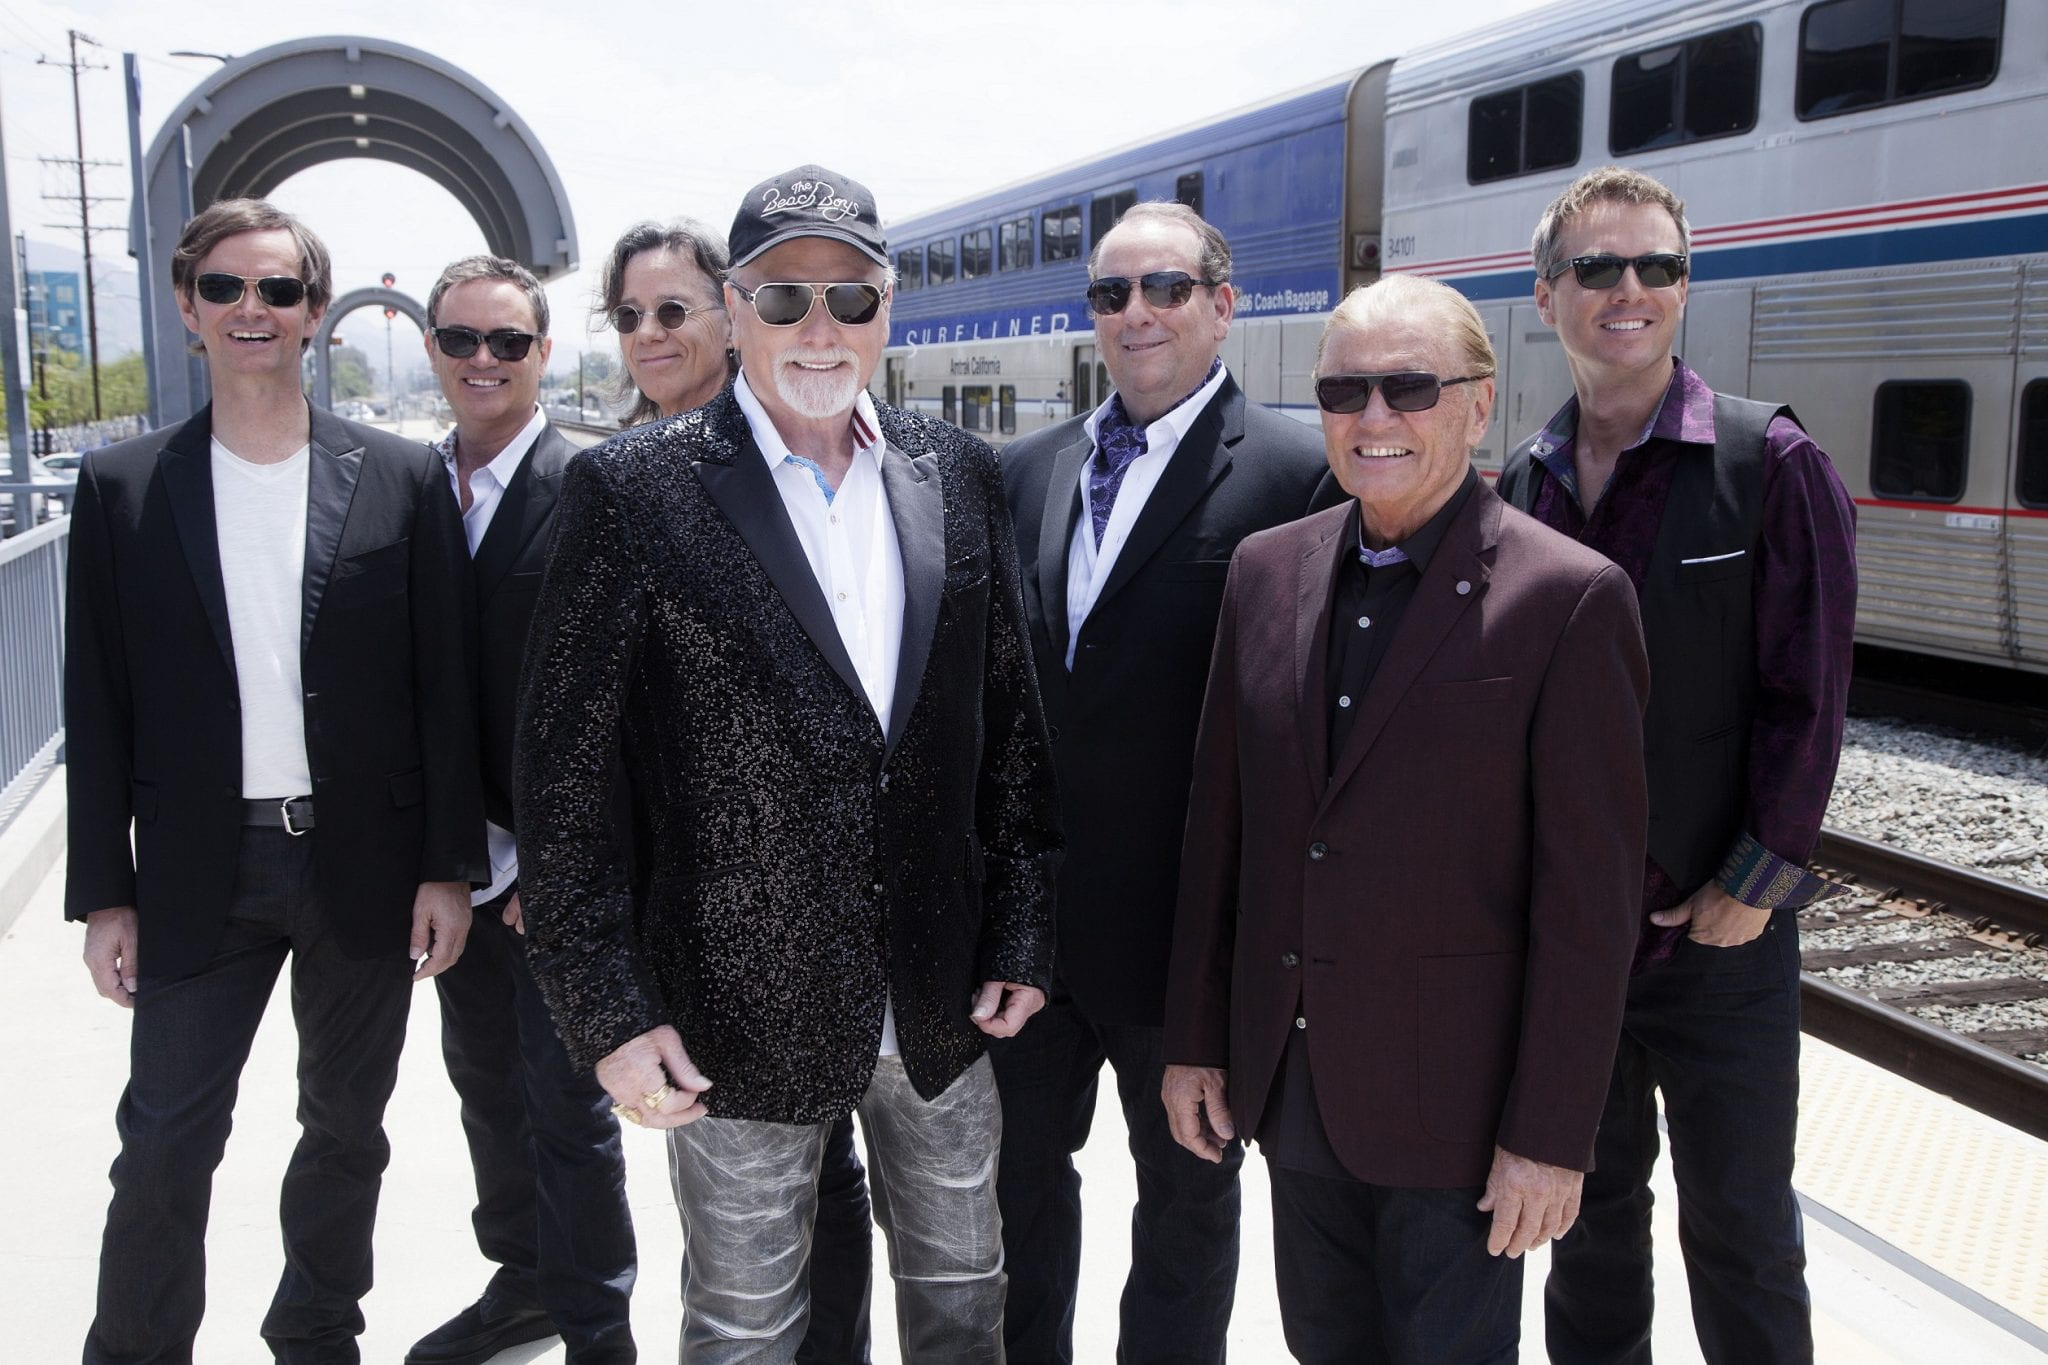 THE BEACH BOYS TO PLAY SCARBOROUGH OPEN AIR THEATRE